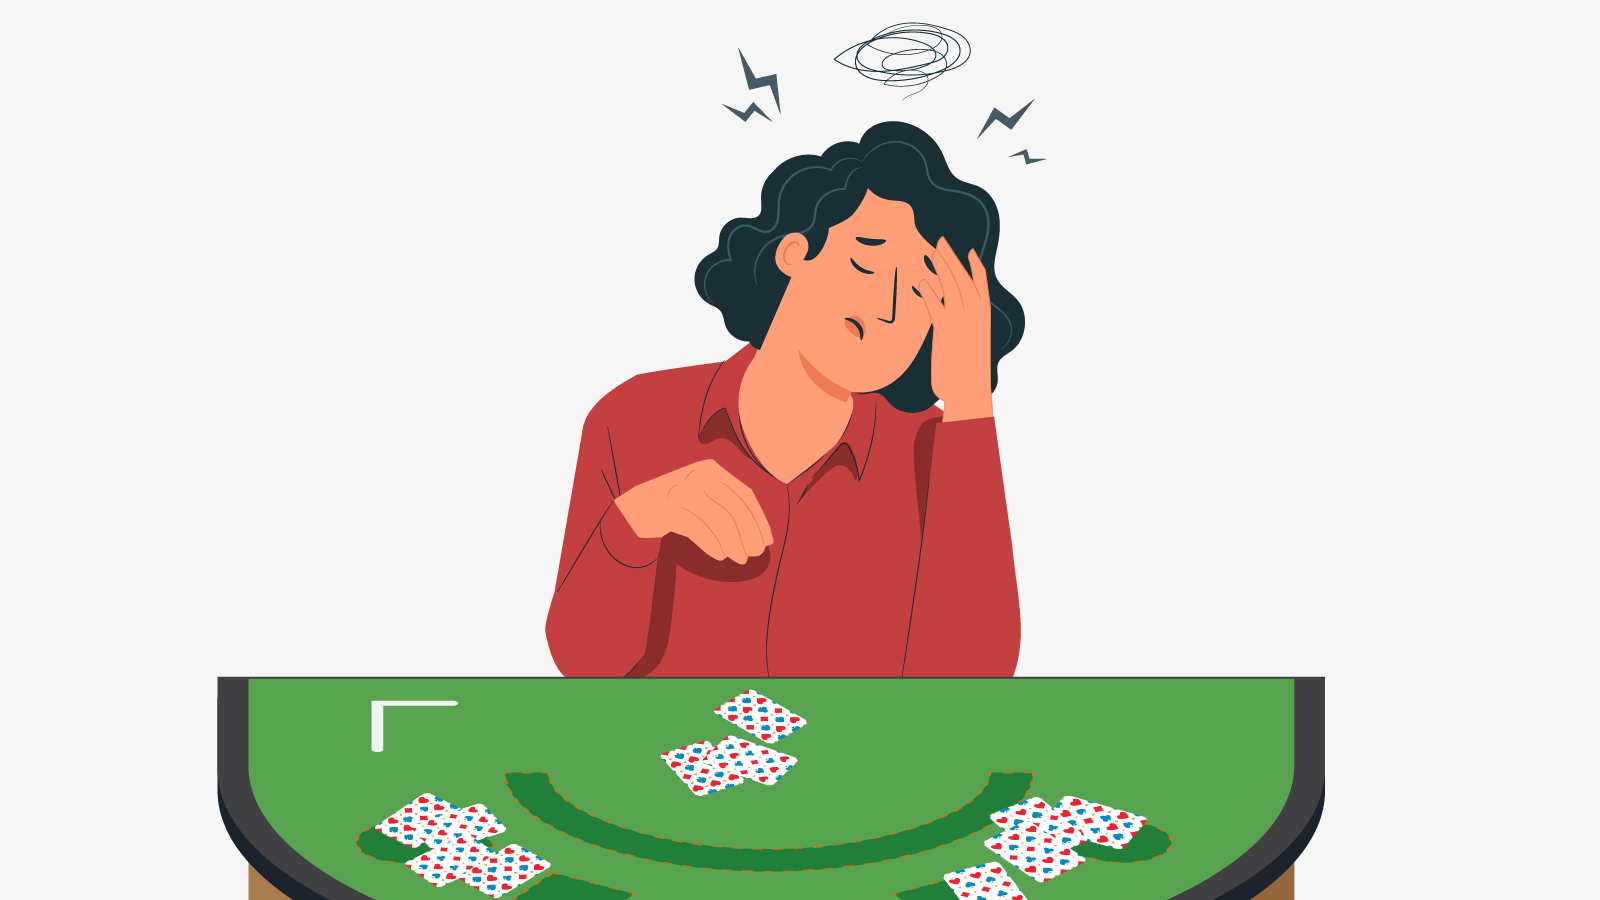 How to identify gambling addiction